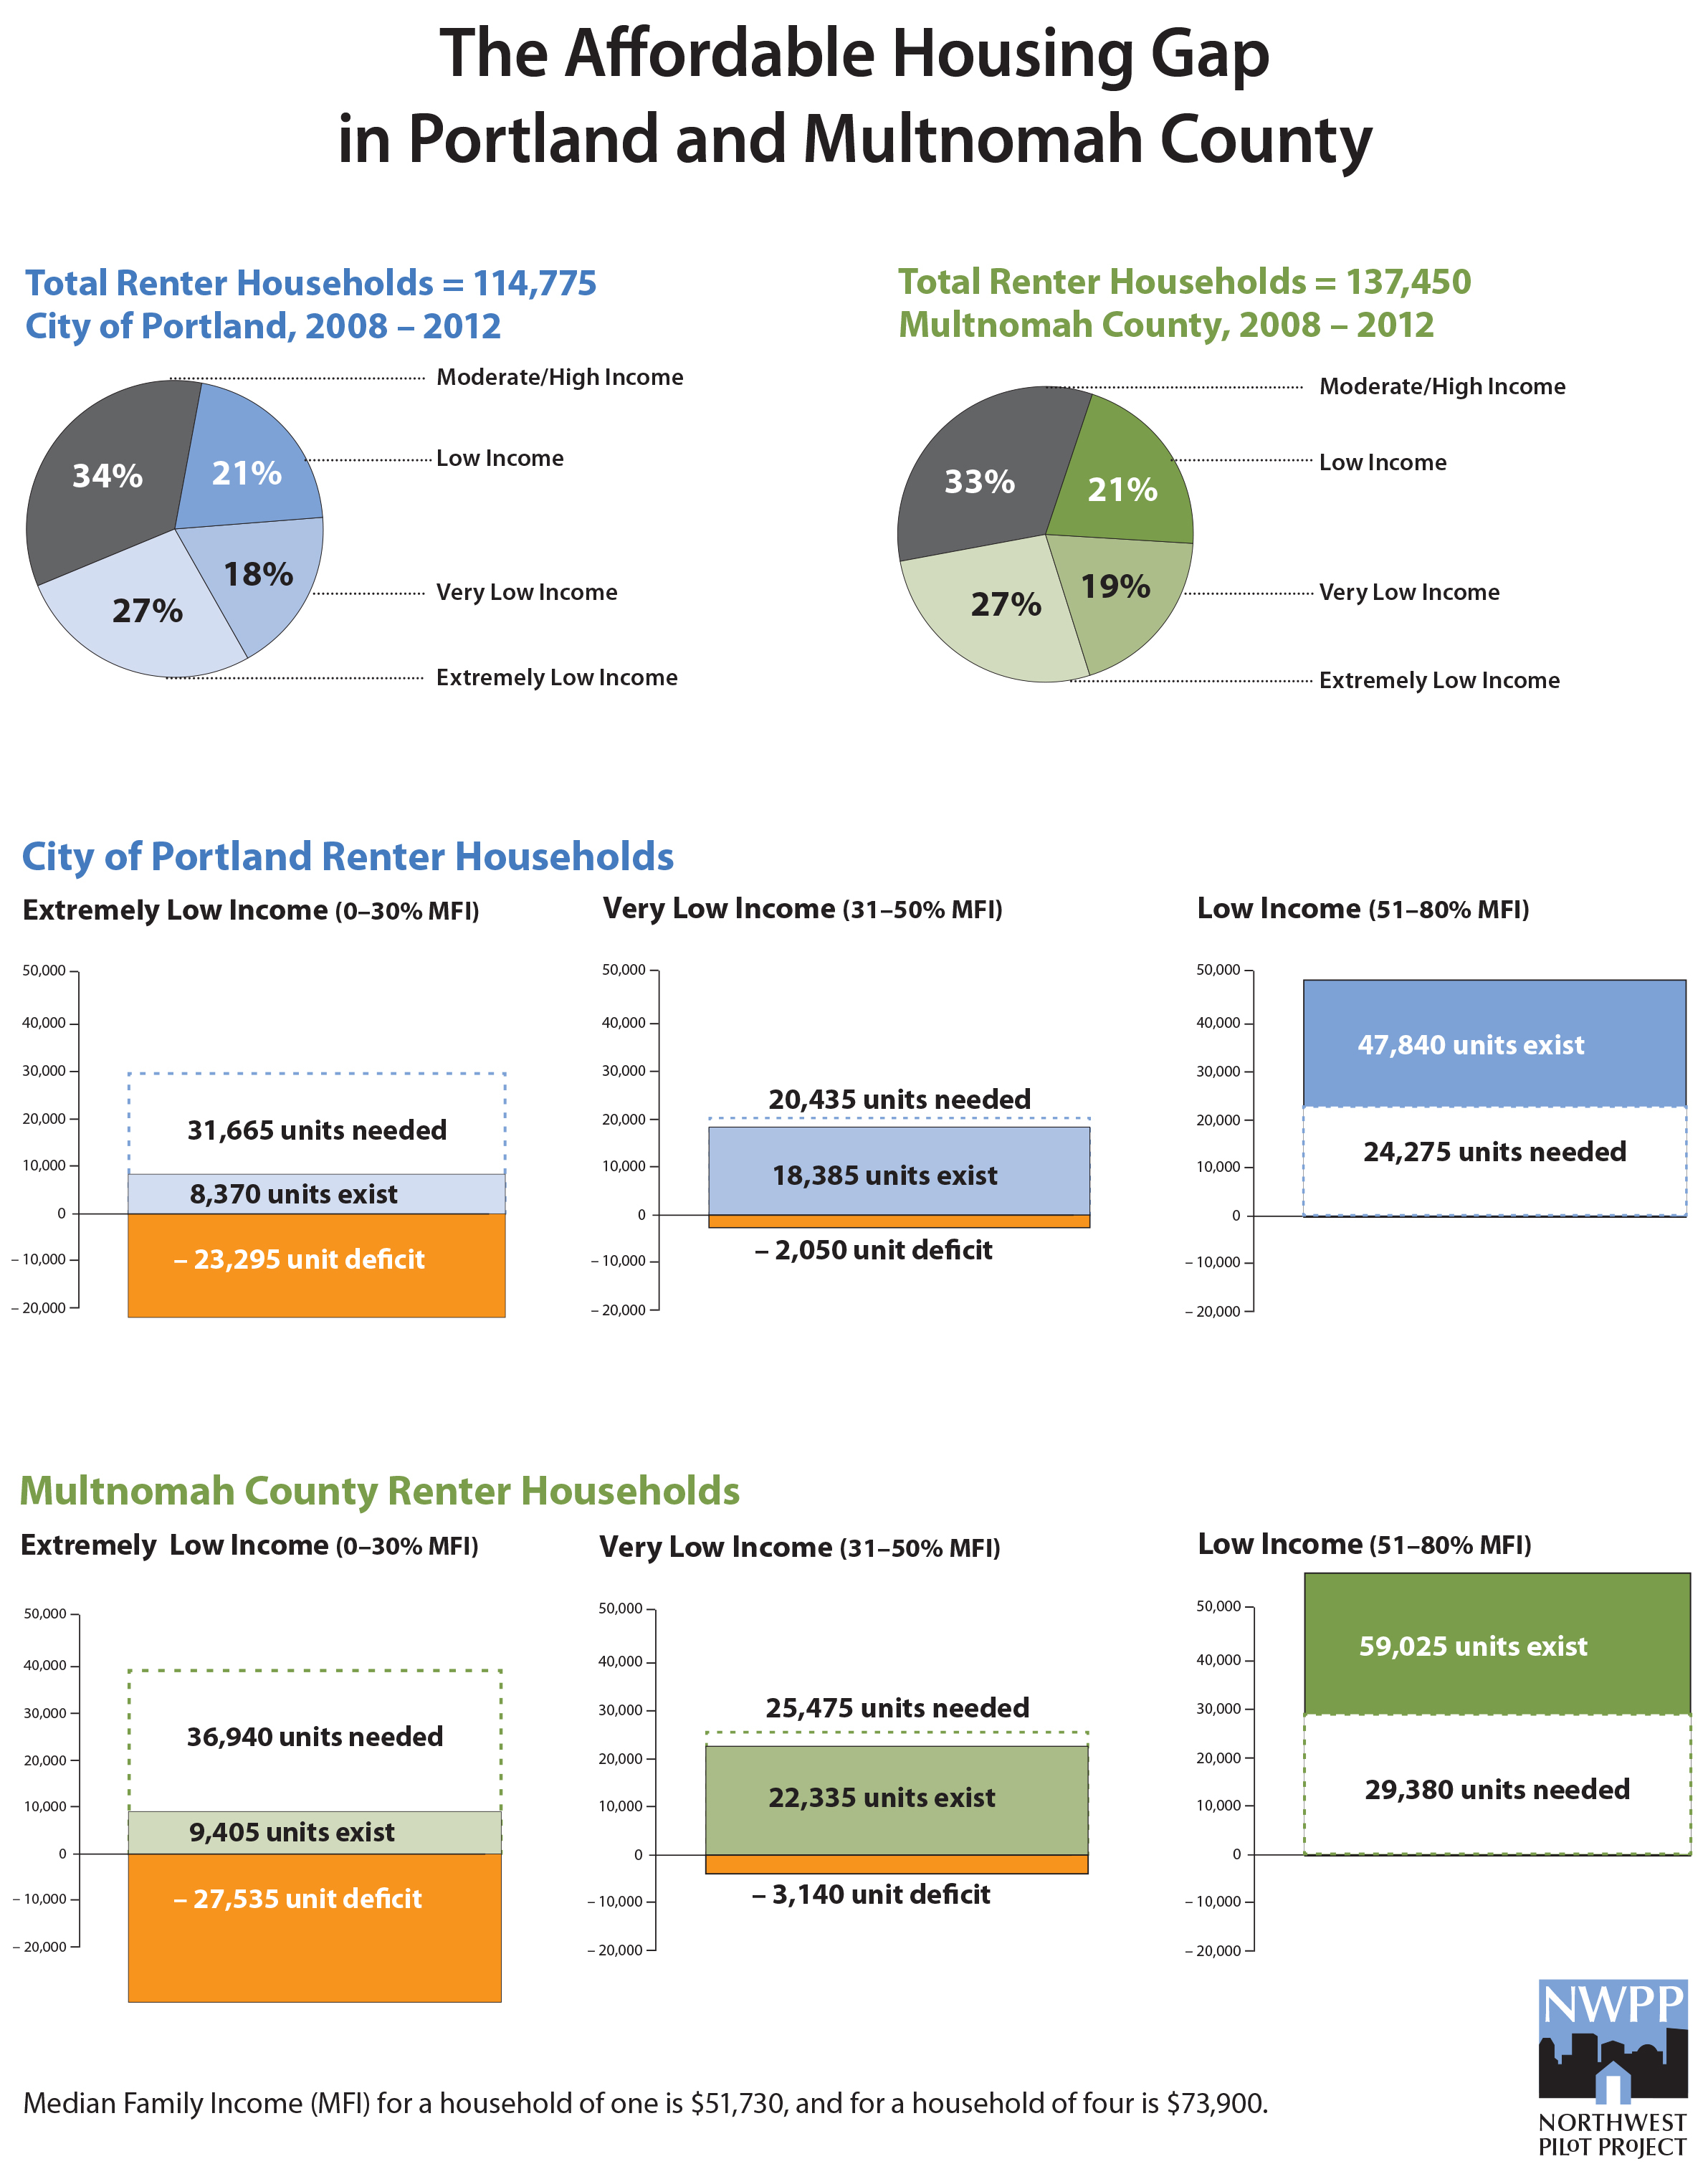 The Affordable Housing Gap in Portland and Multnomah County. Graphic describes total renter households, units needed for three income levels, units existing, and units deficient